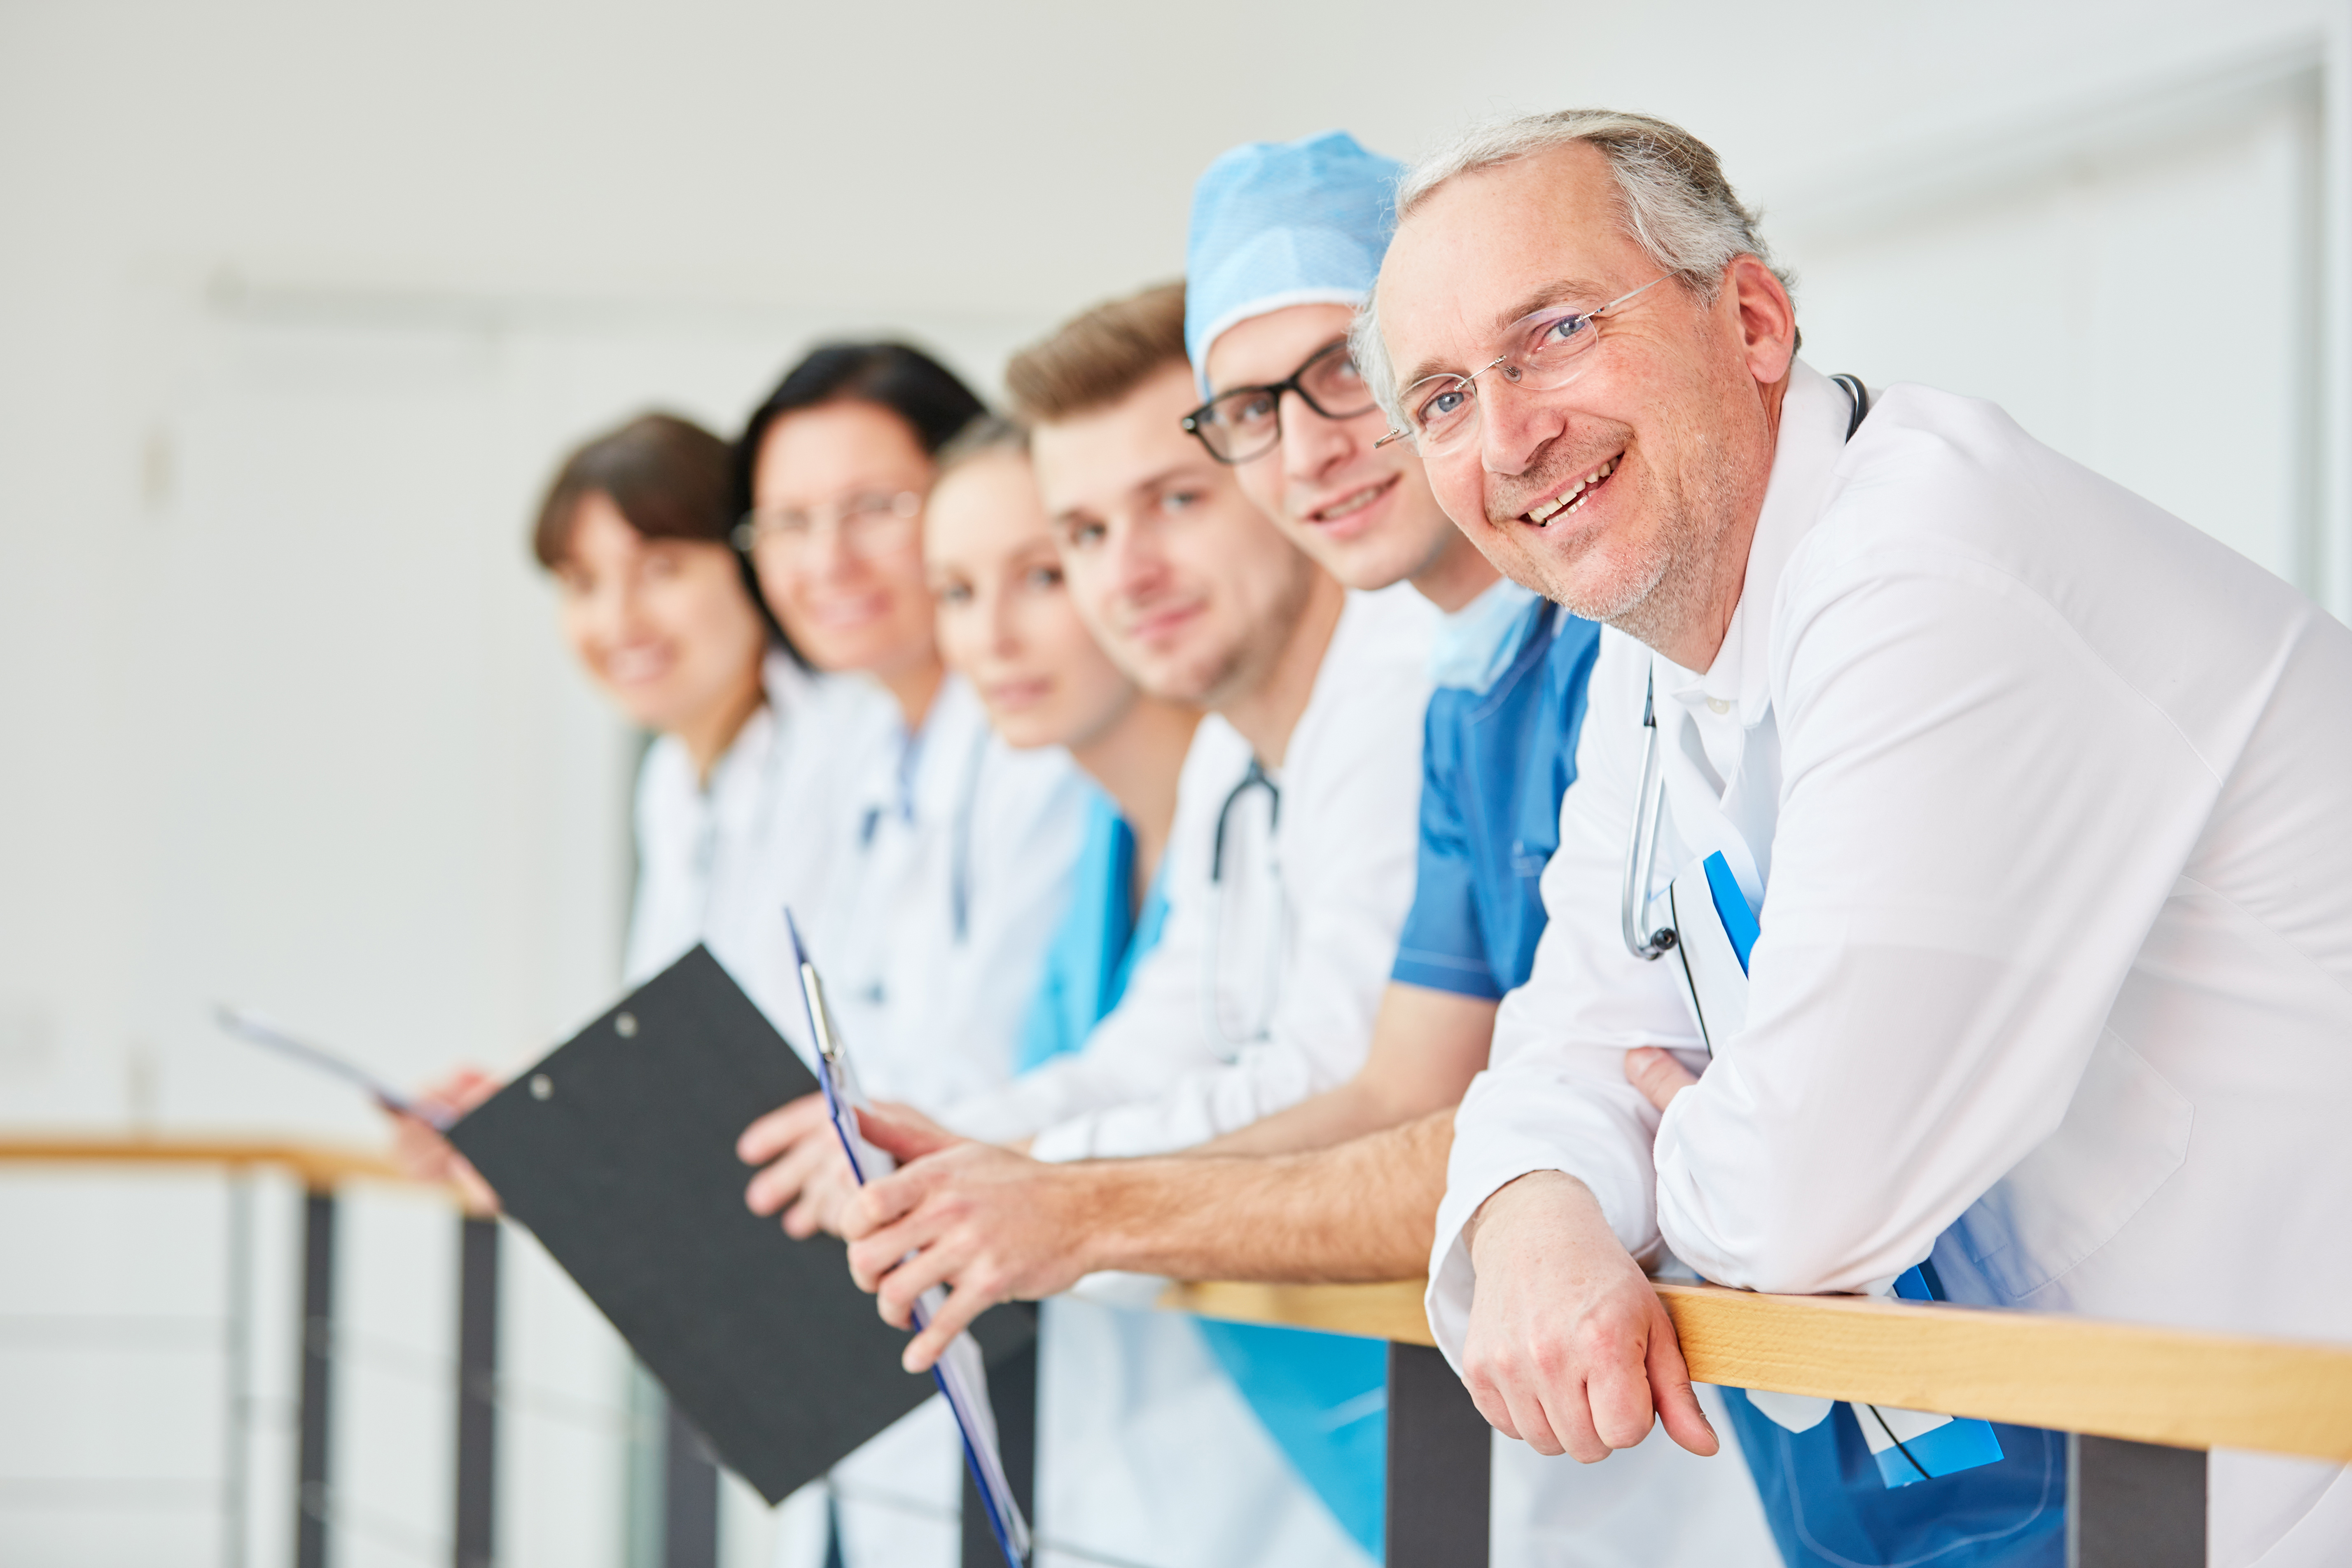 3 Ways to Improve the Provider Credentialing Process